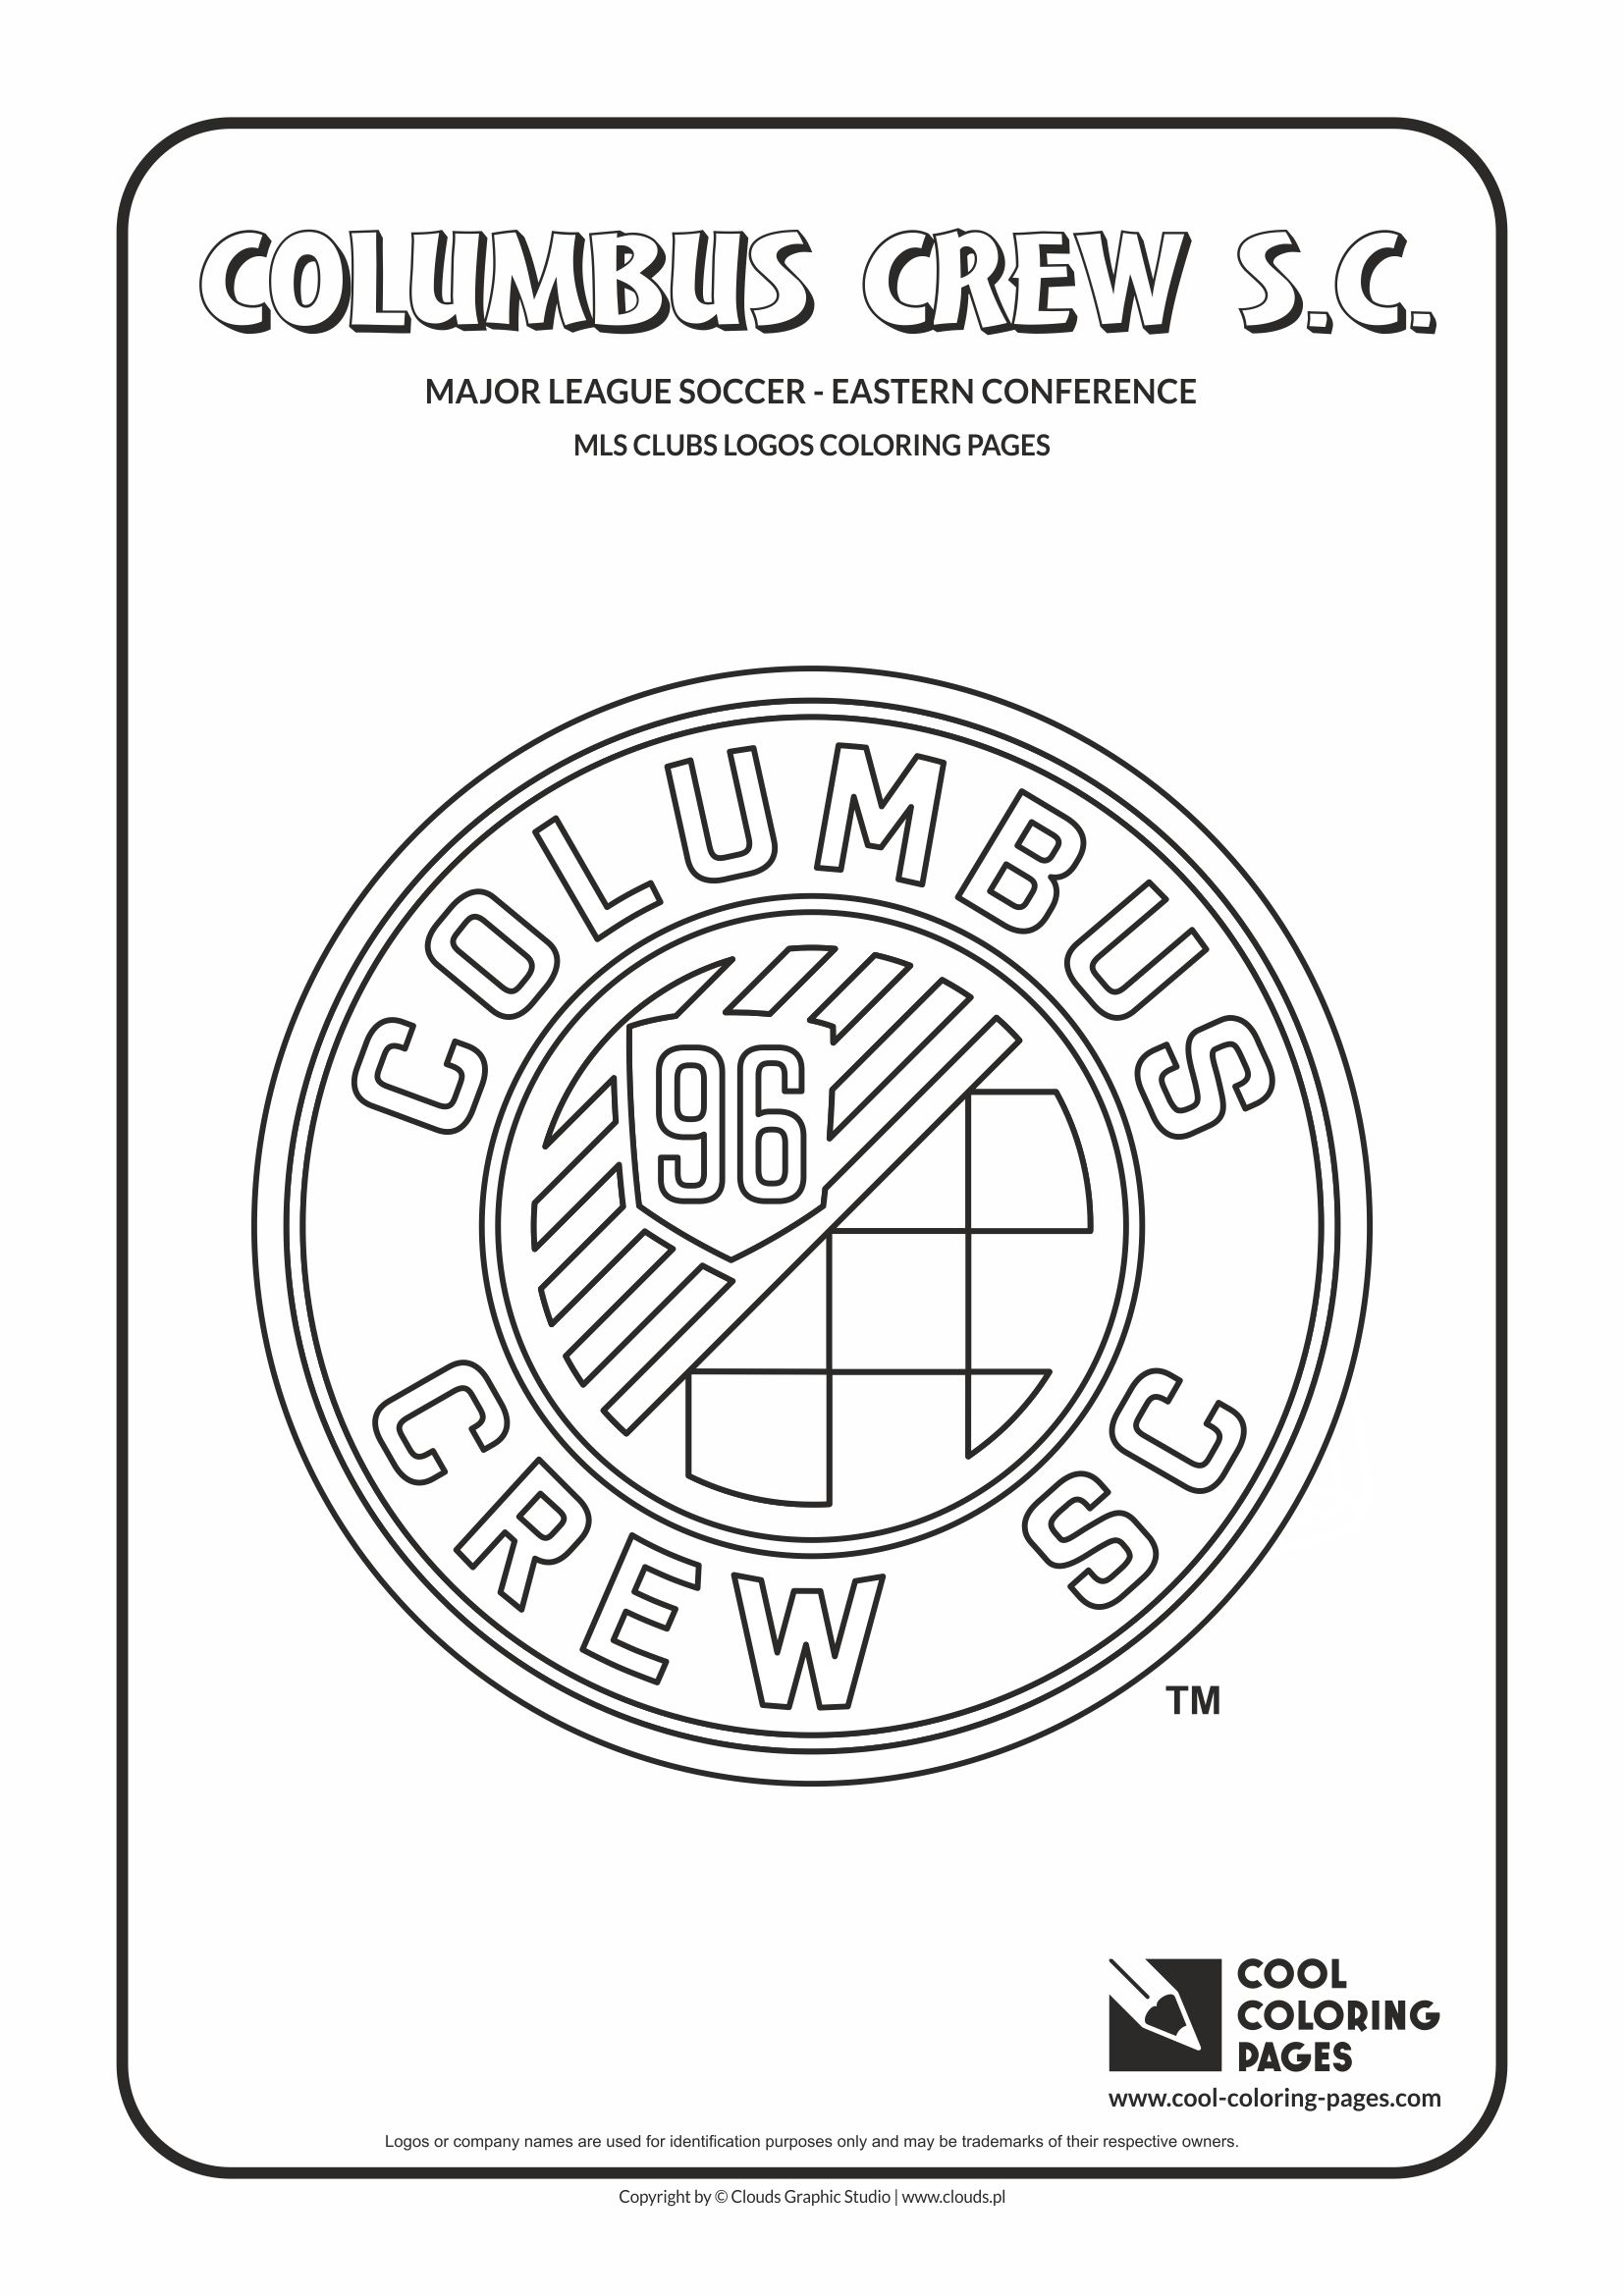 Cool coloring pages mls soccer clubs logos coloring pages for Columbus coloring page